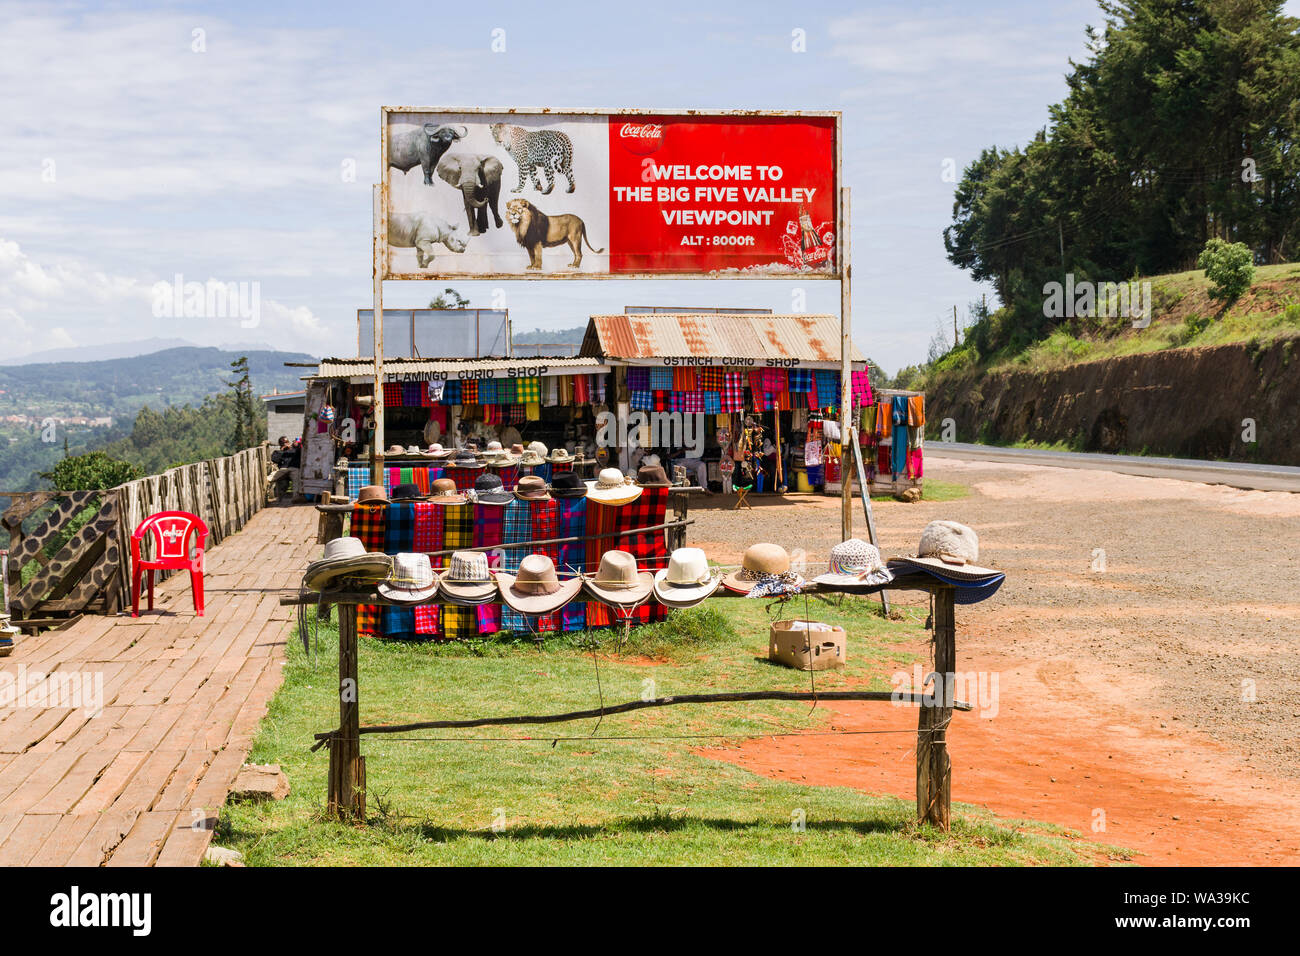 Curio shacks selling souvenirs and gifts lining the A104 in the Rift Valley, Kenya Stock Photo